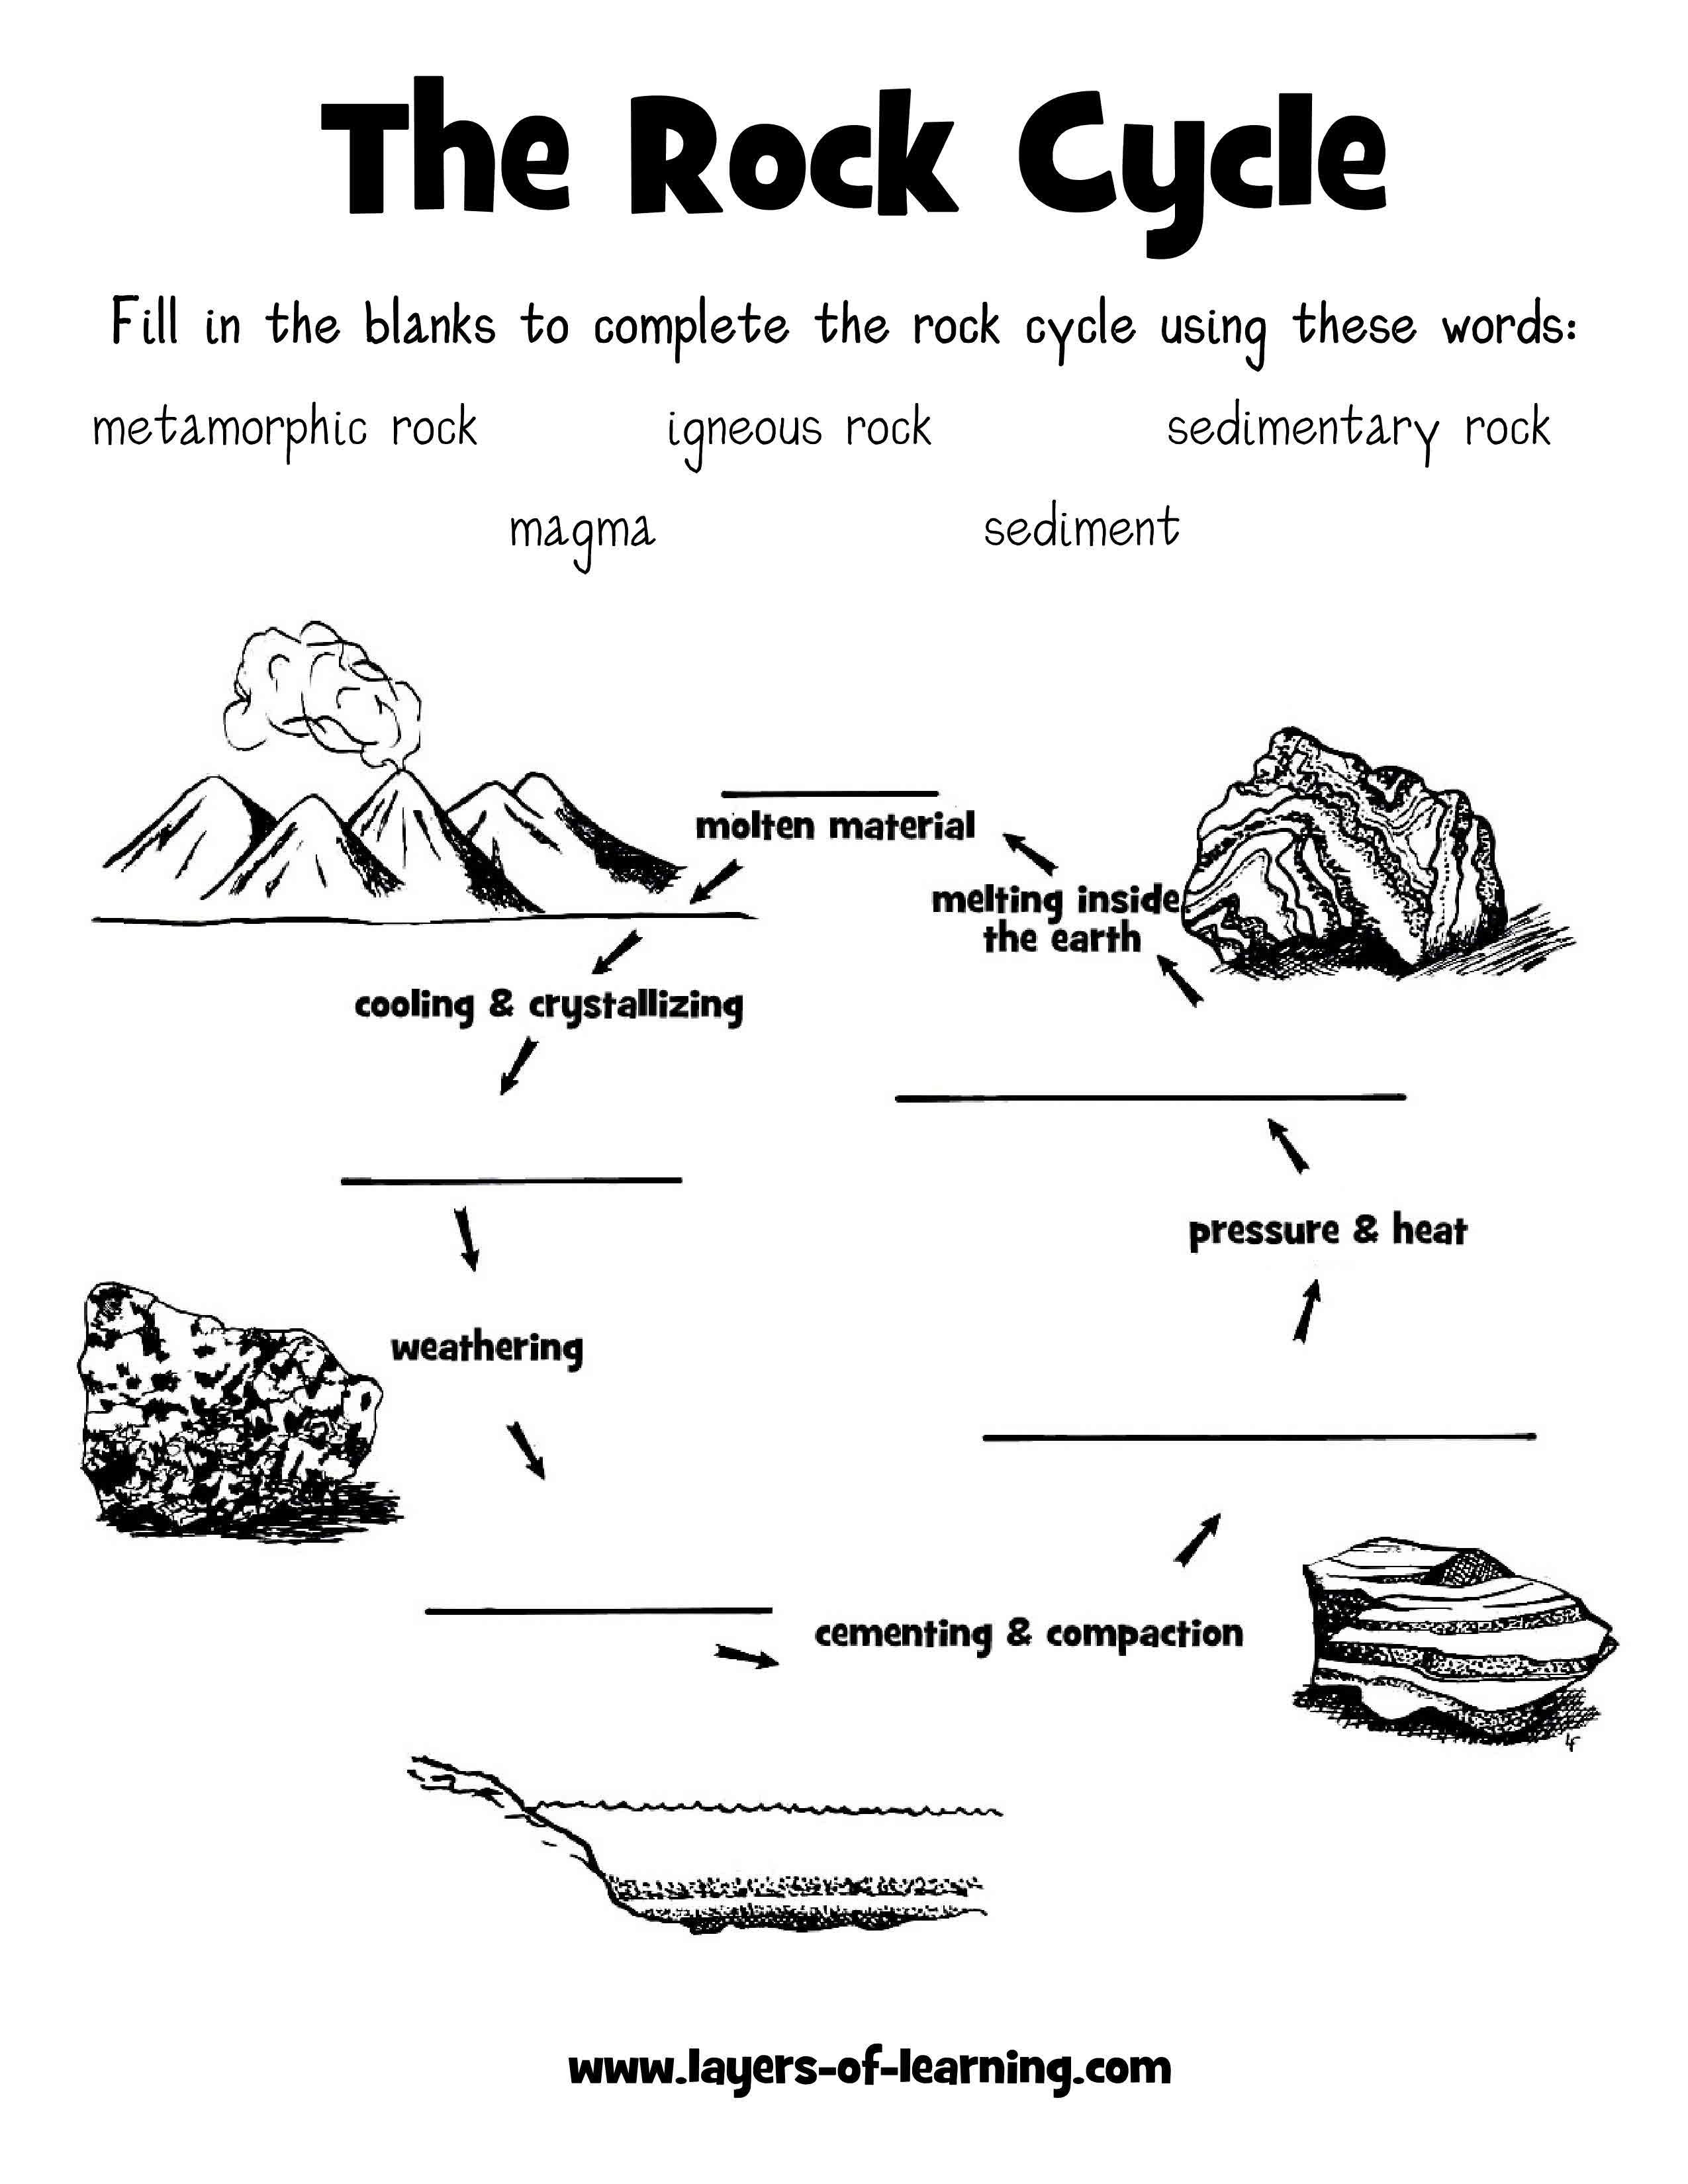 Worksheets Sedimentary Rocks Worksheet sedimentary rock worksheets free worksheet printables worksheets